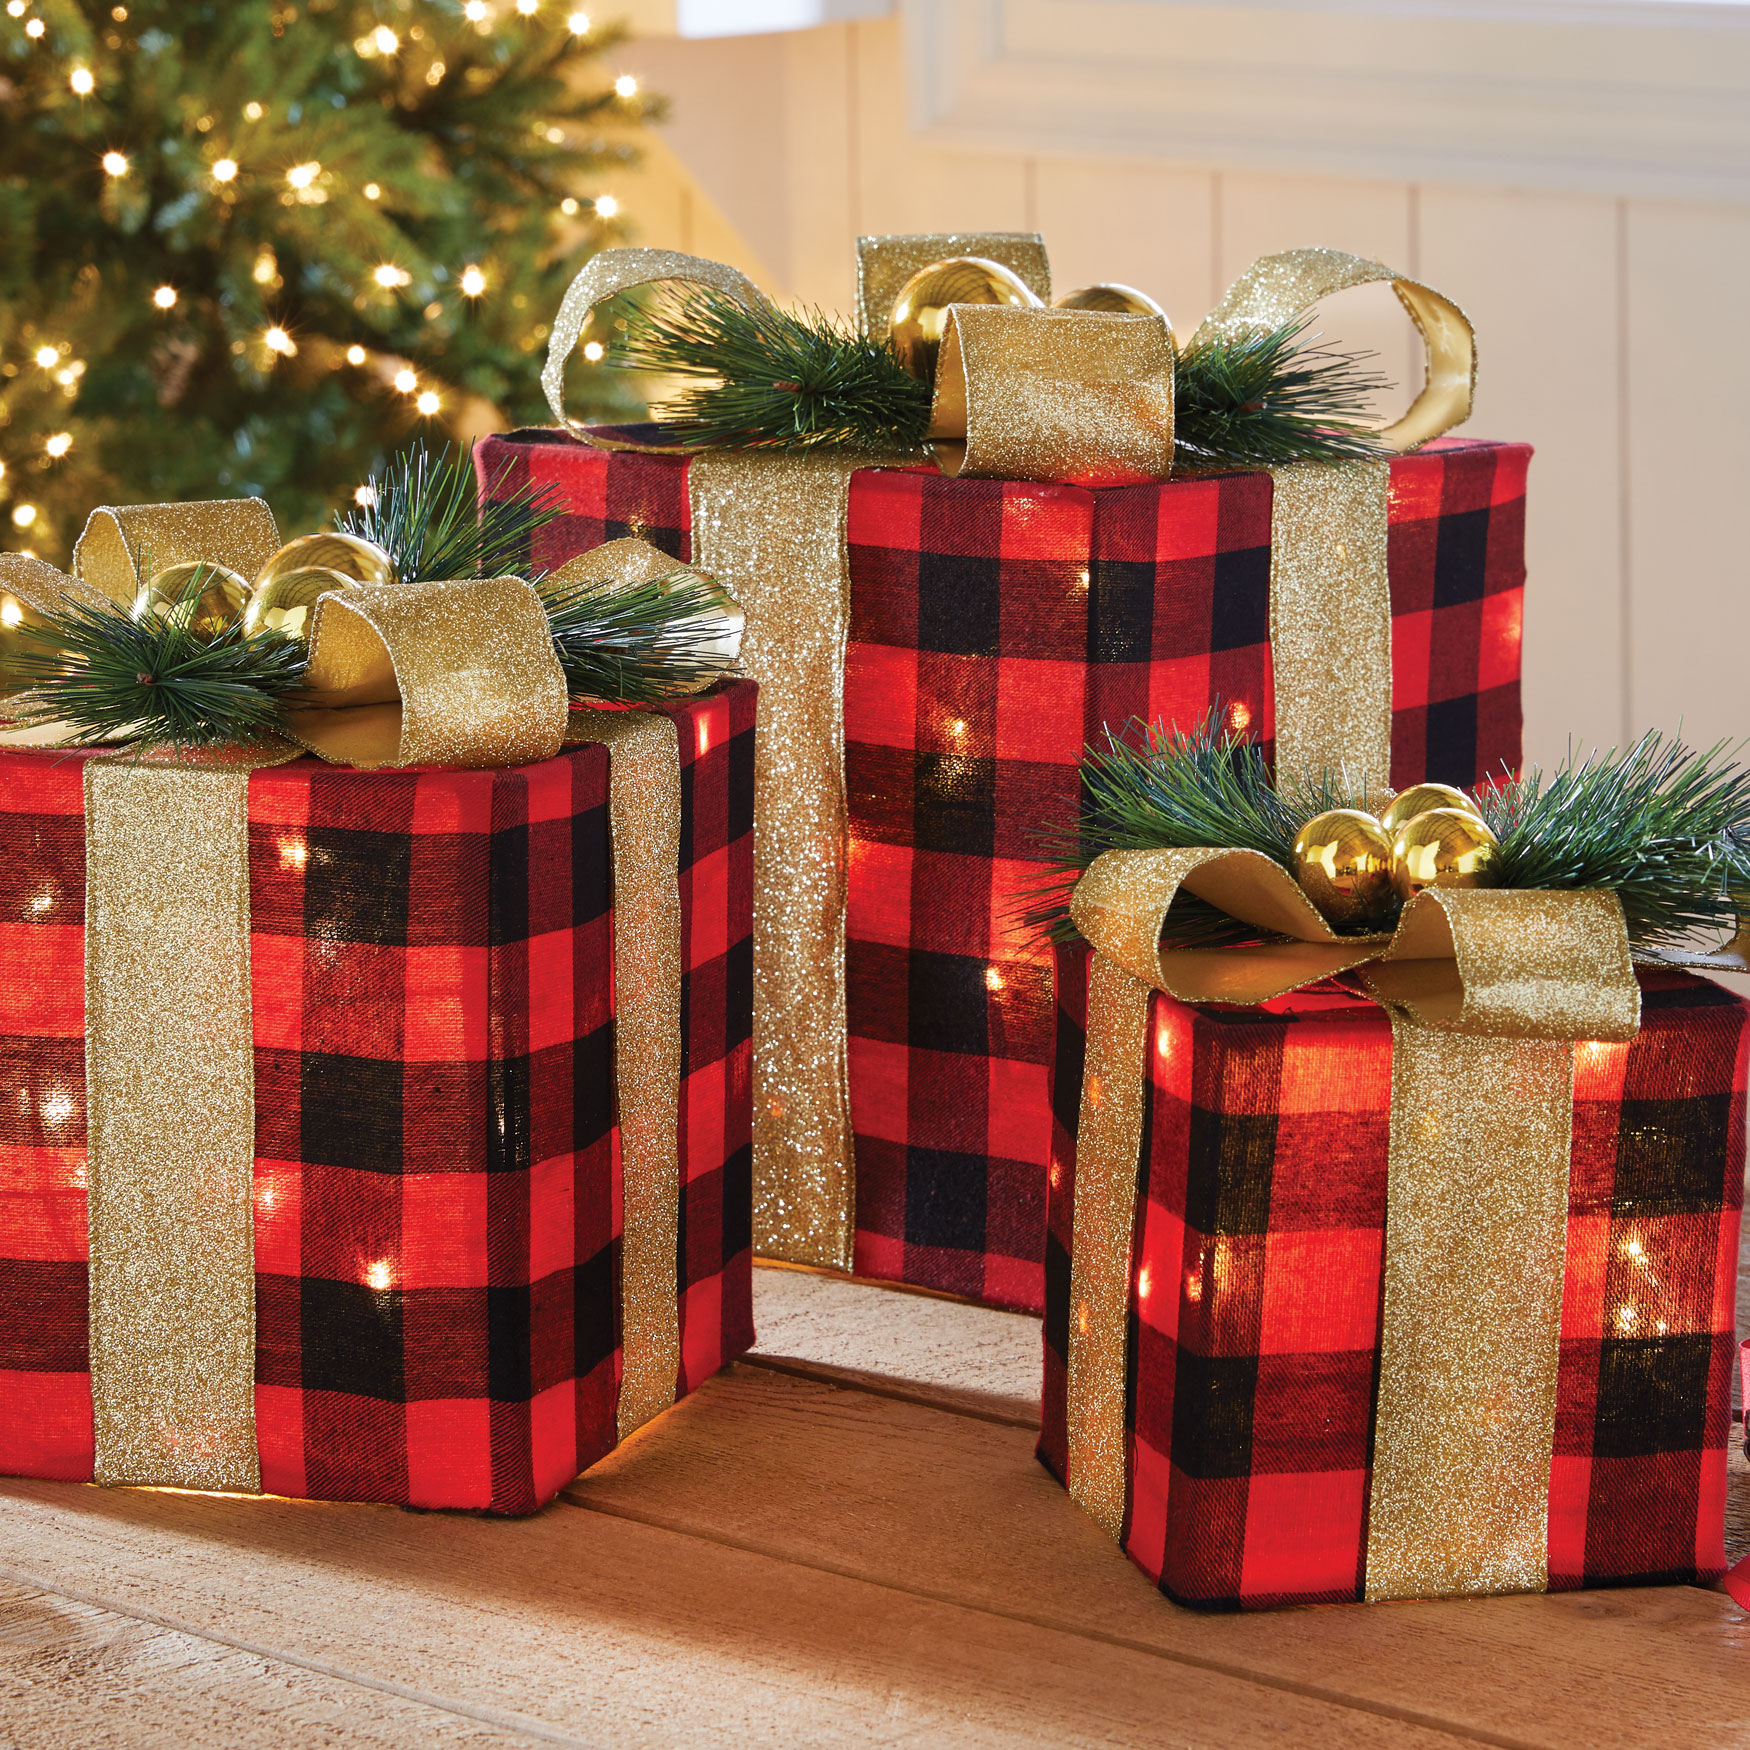 Pre-Lit Buffalo Plaid Gift Boxes, Set of 3, MULTI